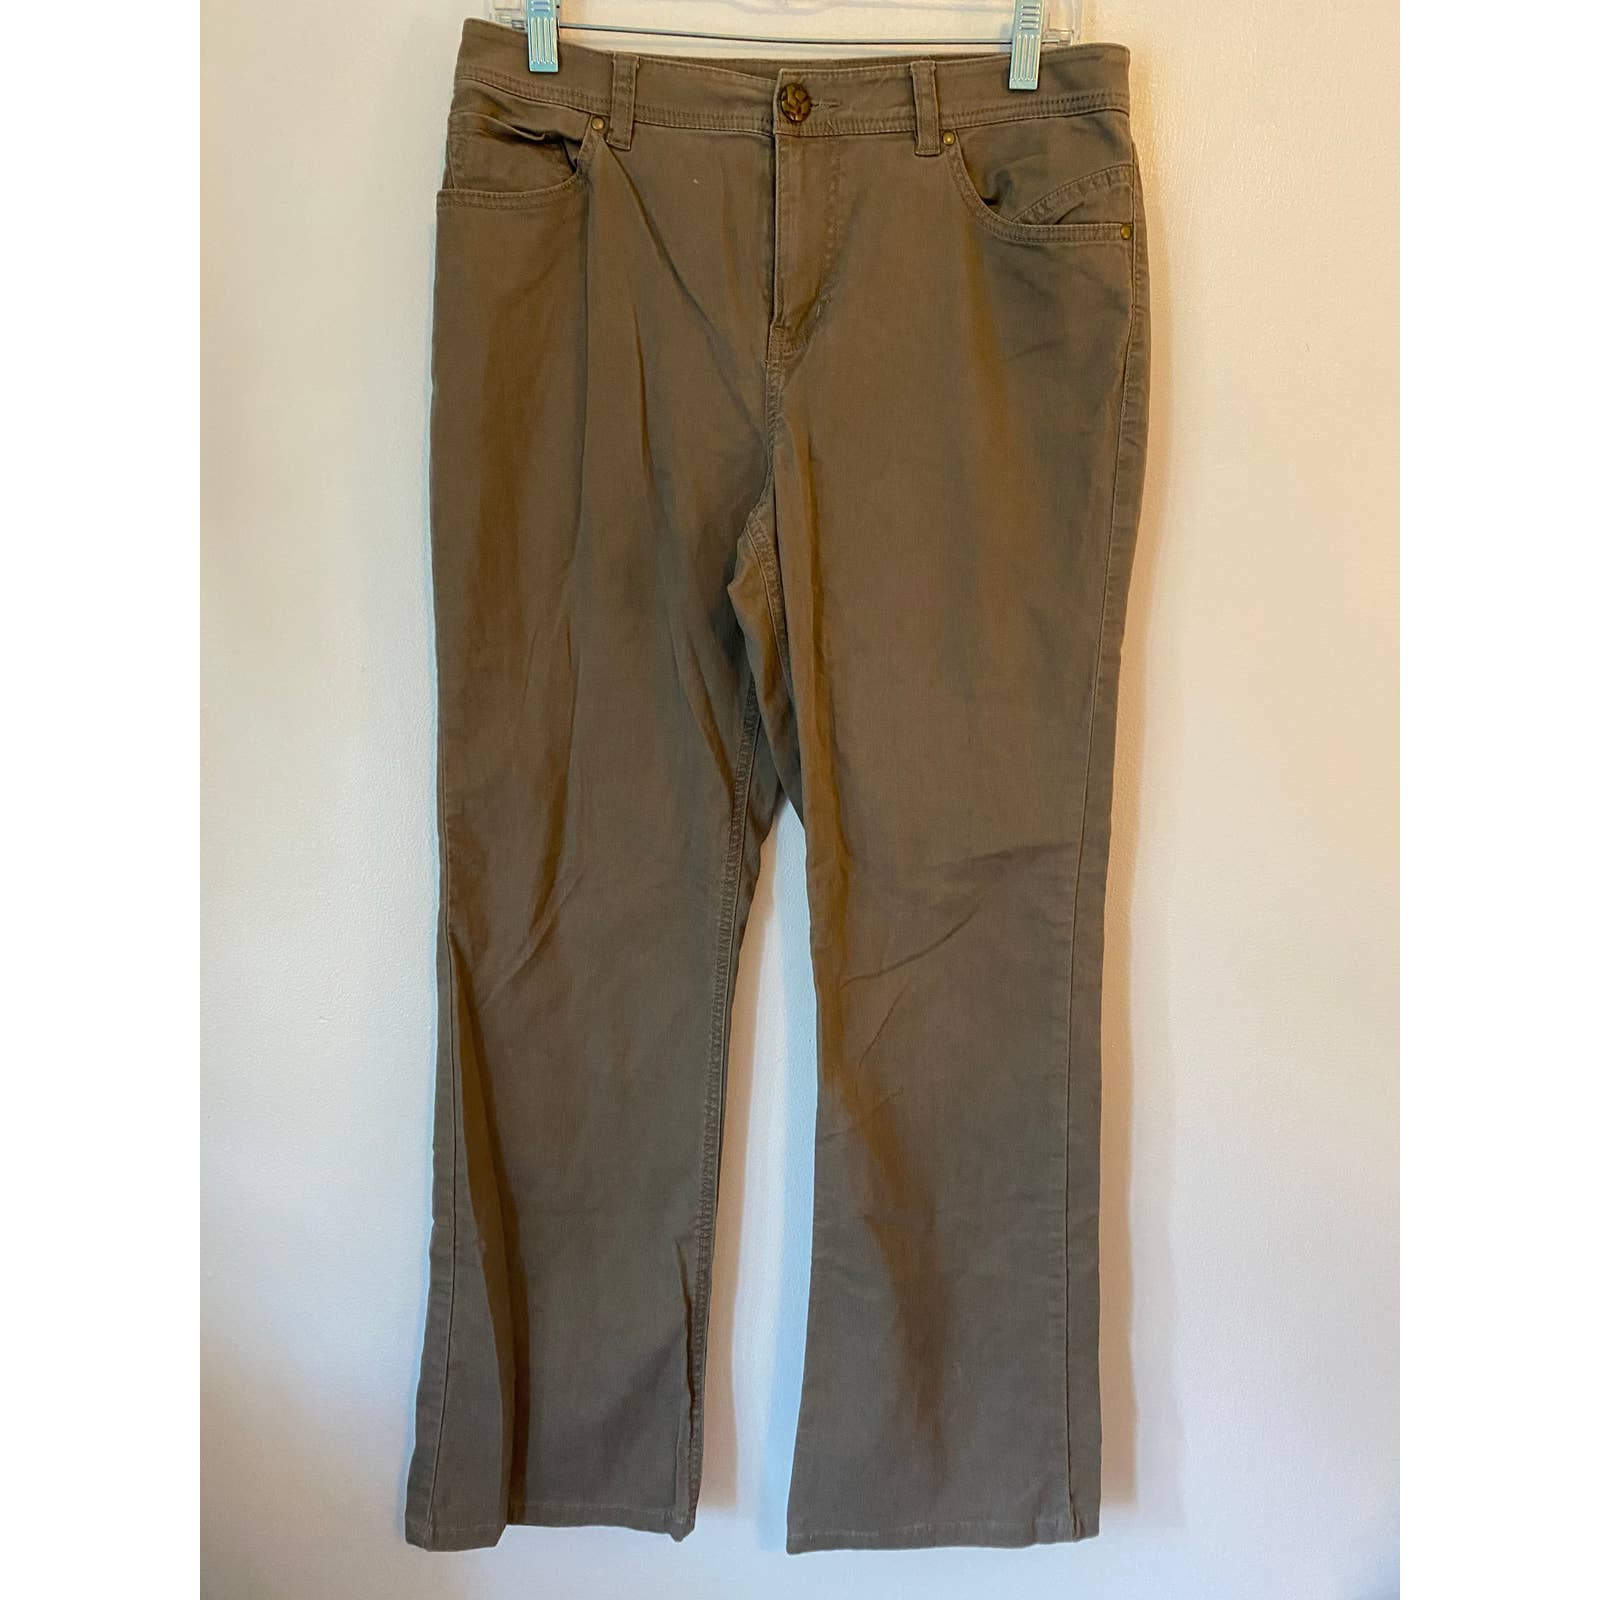 Product Image 1 - TRIBAL bootcut jean brown pants